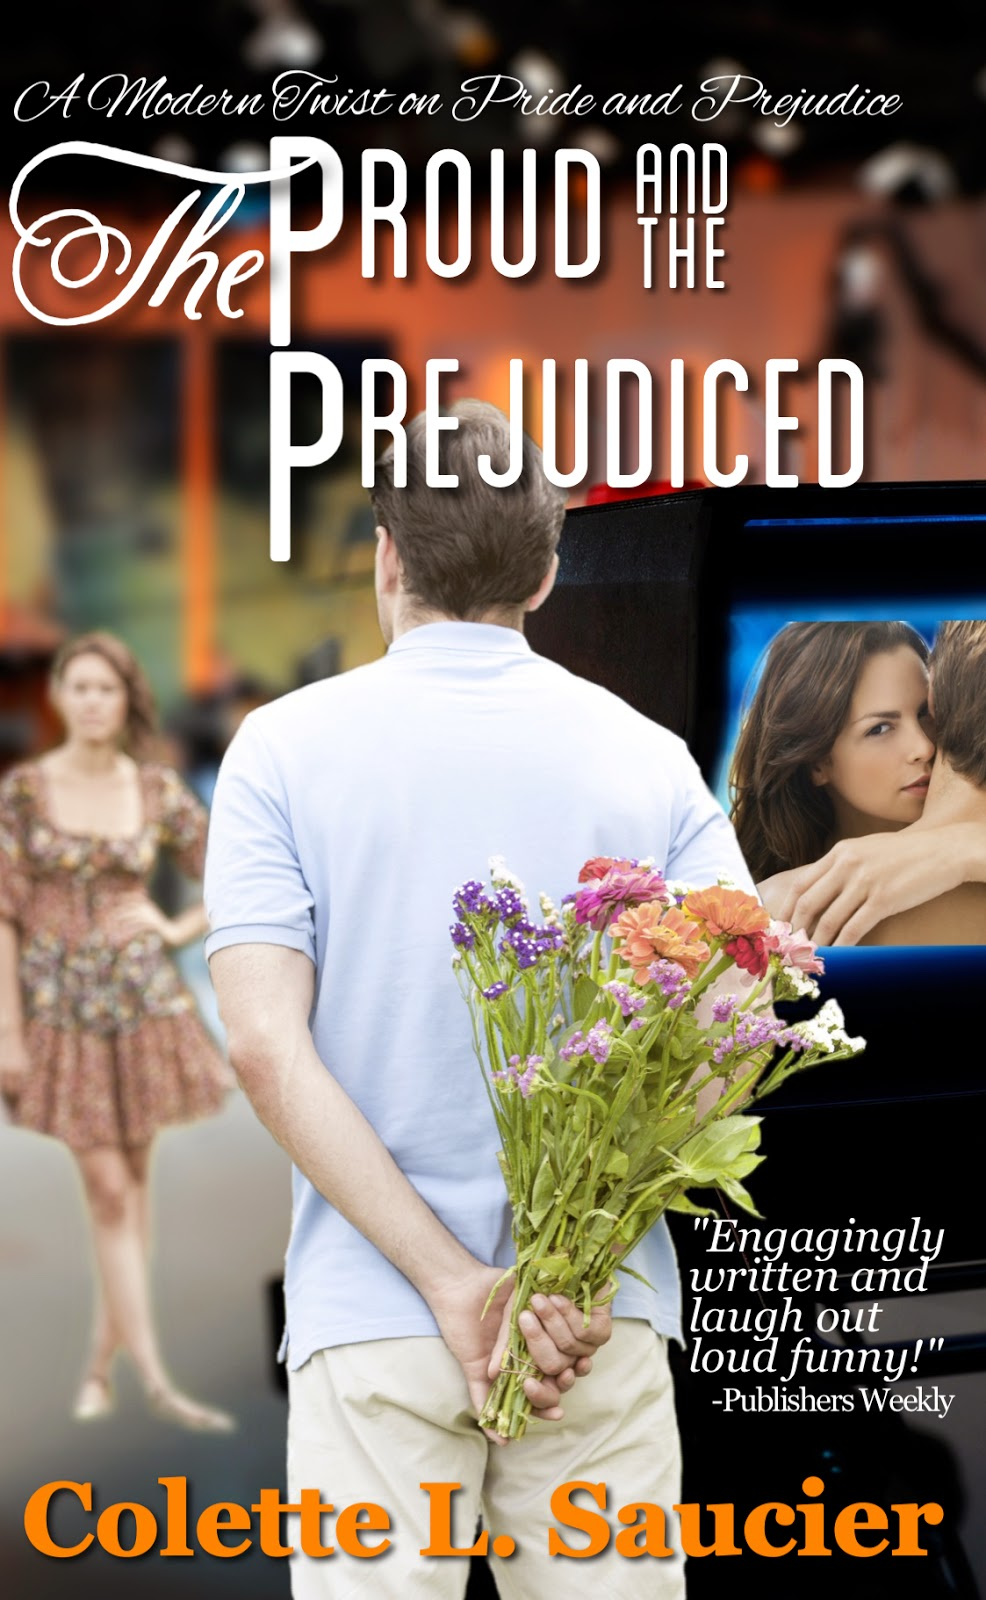 http://www.colettesaucier.com/the-proud-and-the-prejudiced/